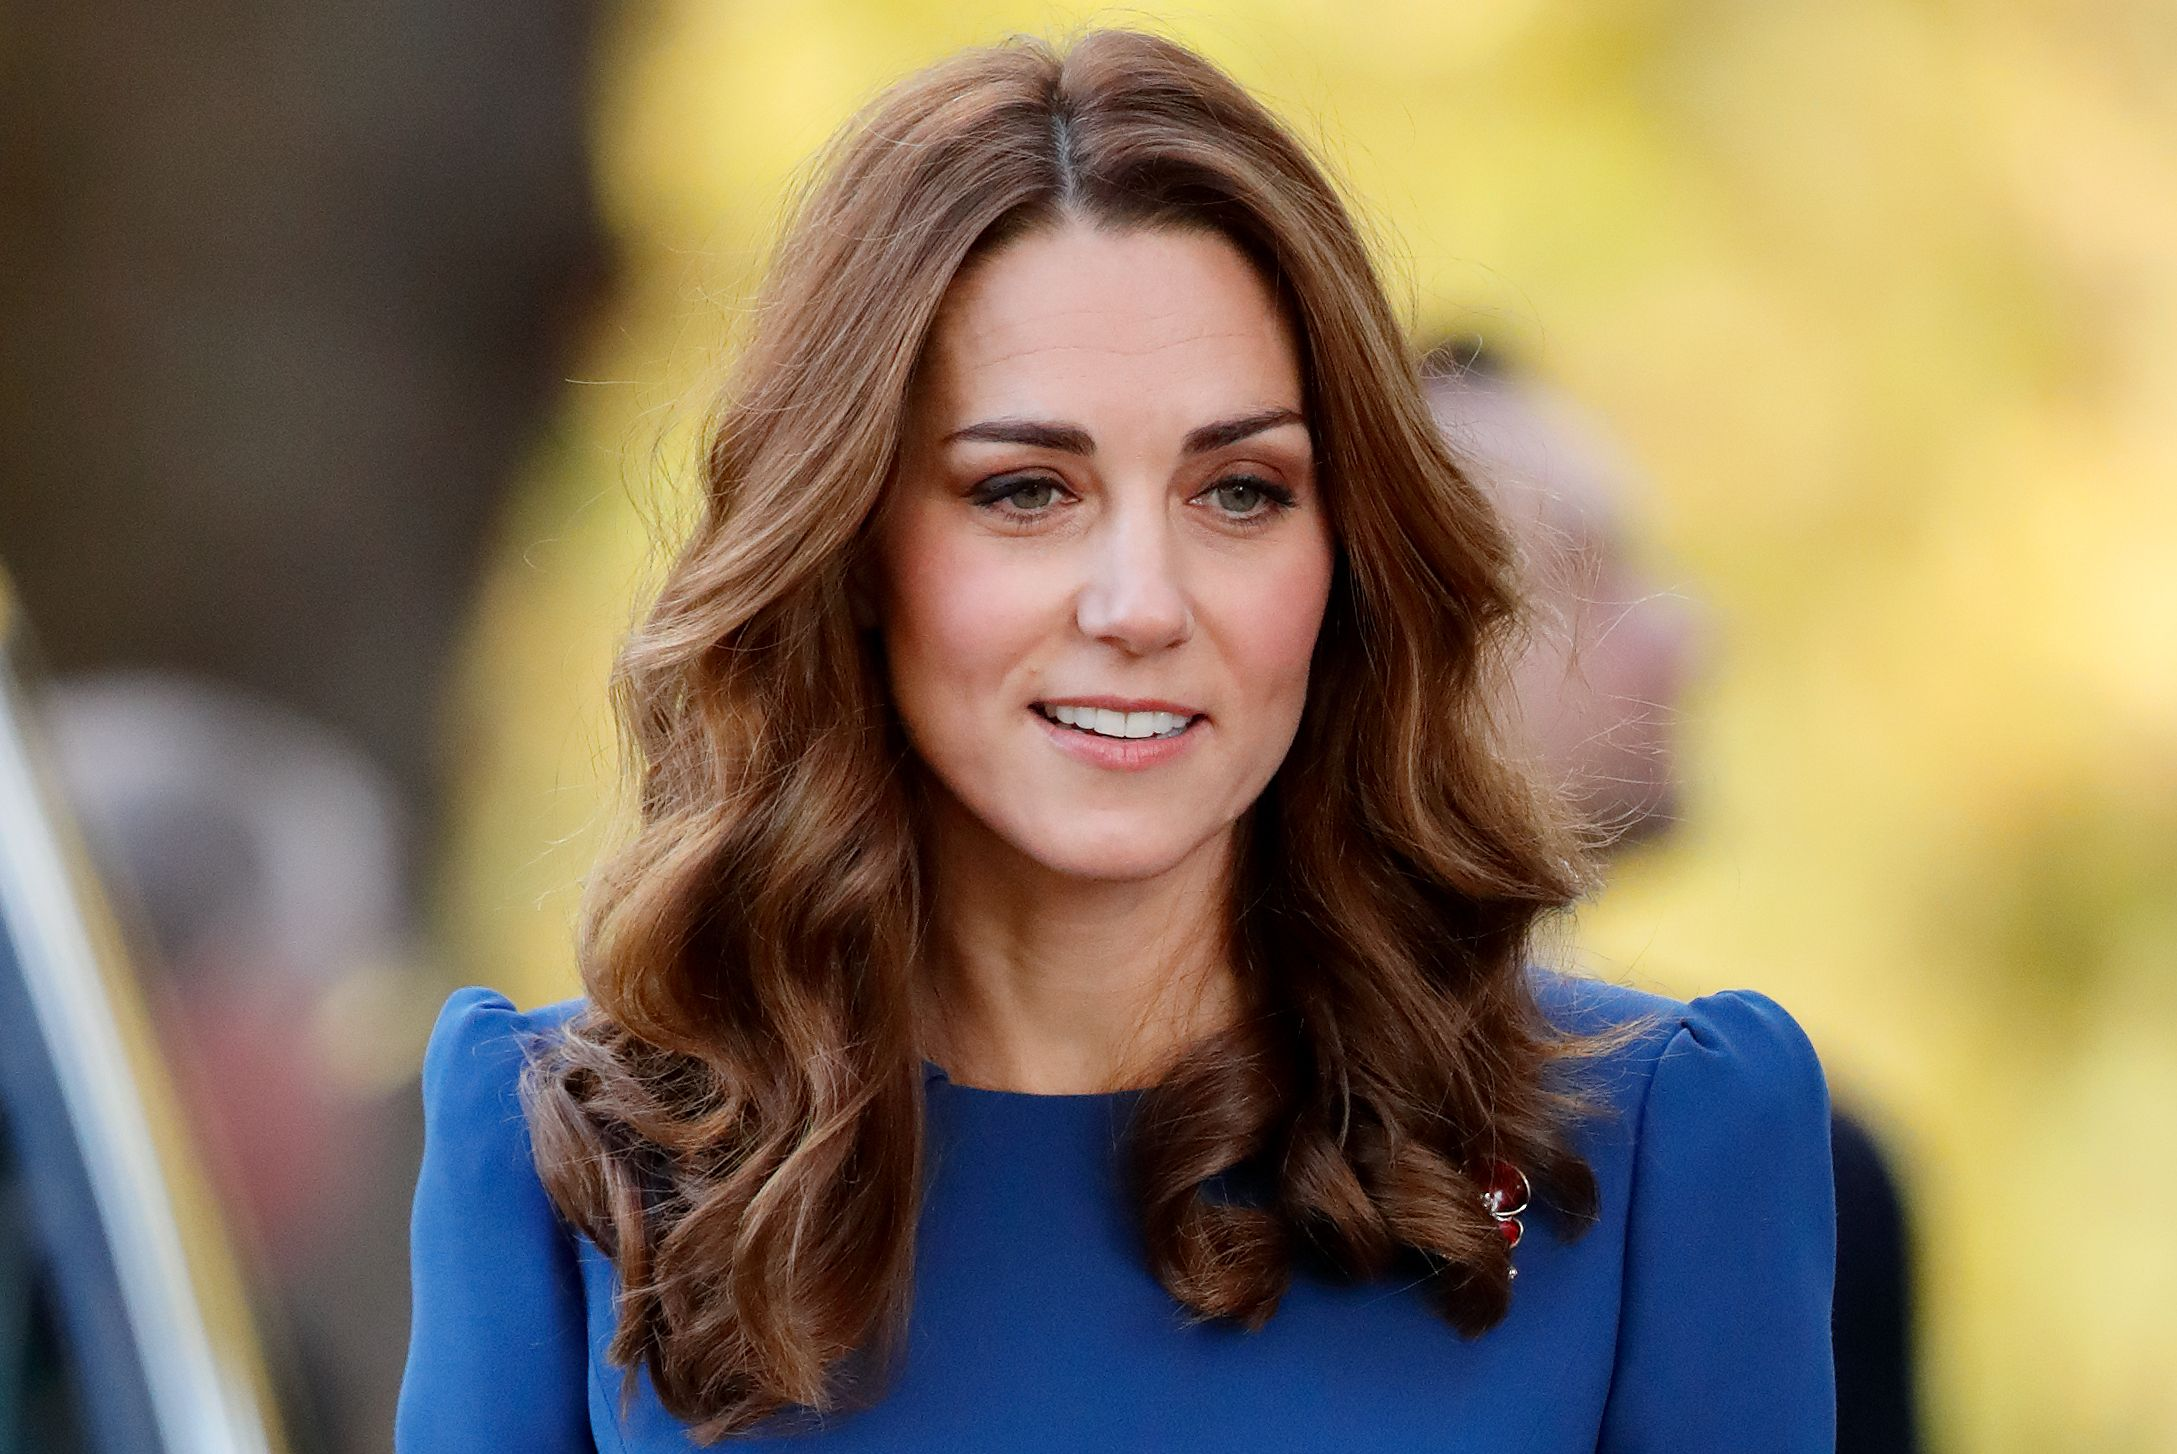 This £65 high street dress looks a lot like one Kate Middleton wore